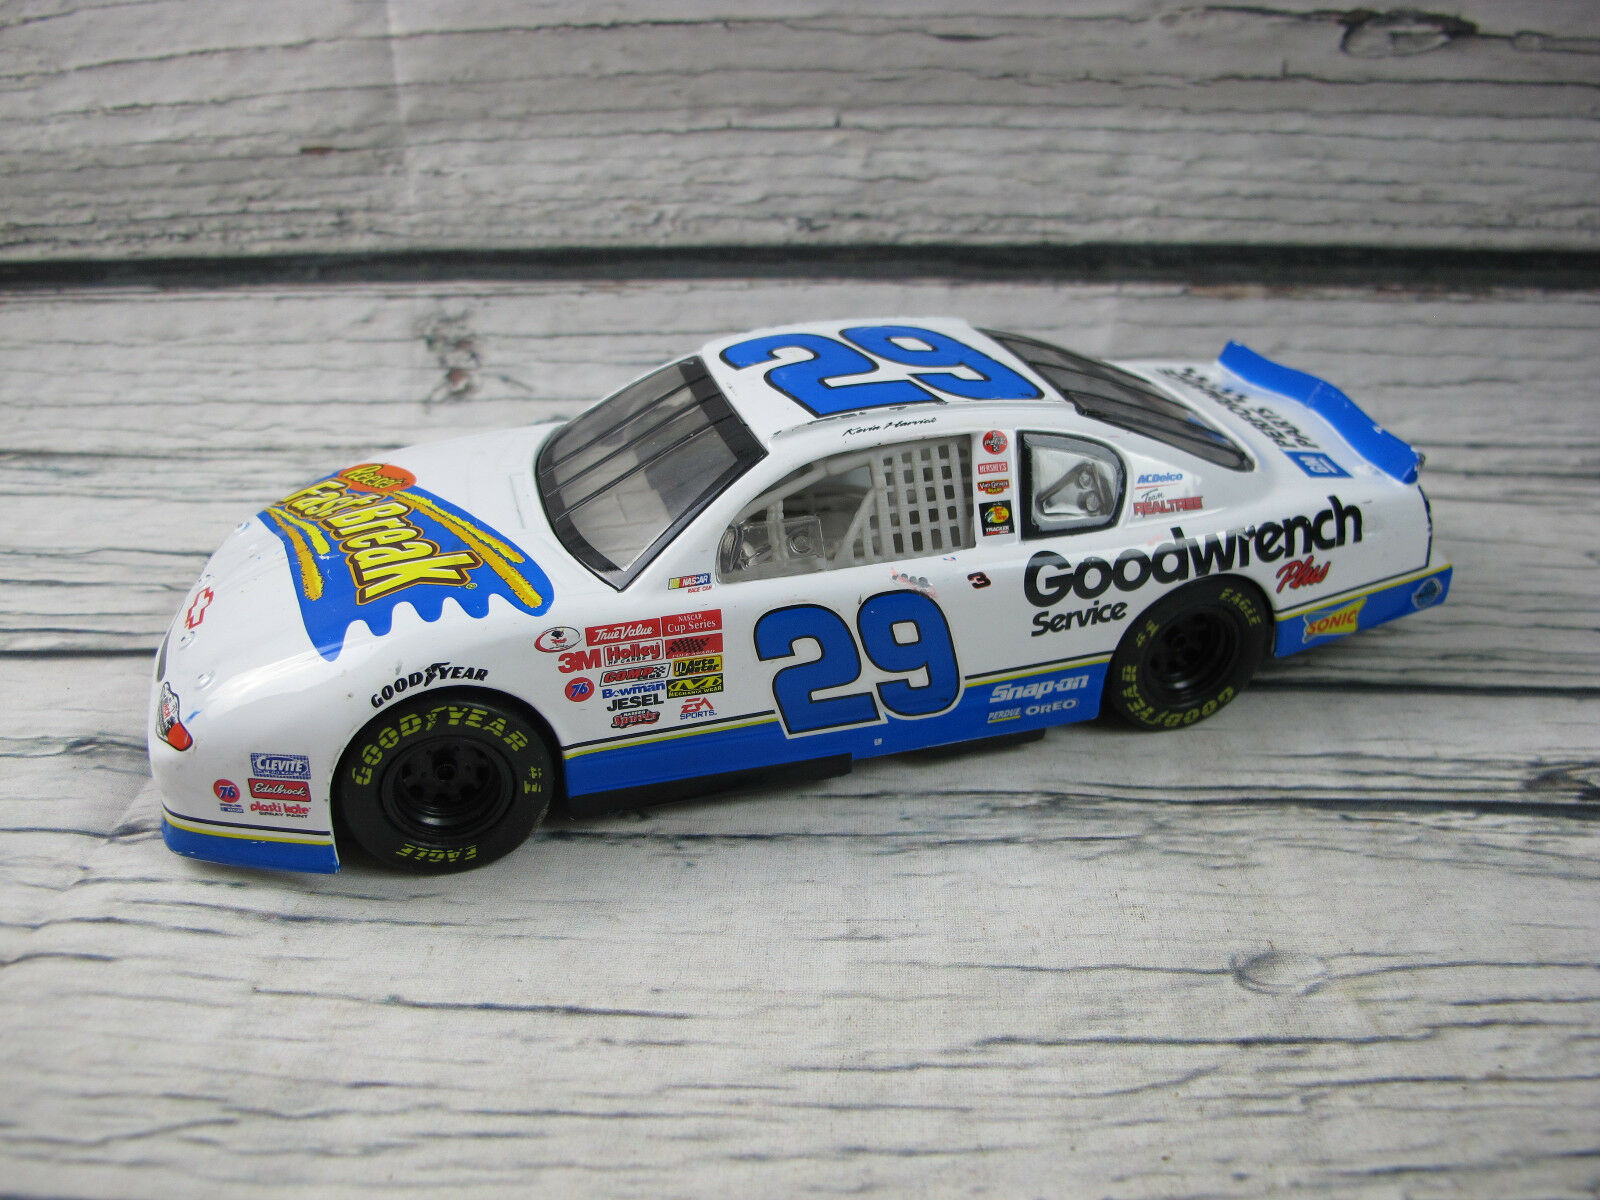 Kevin Harvick 2002  29 Goodwrench Fast Break Monte Carlo Action 1 24 Scale